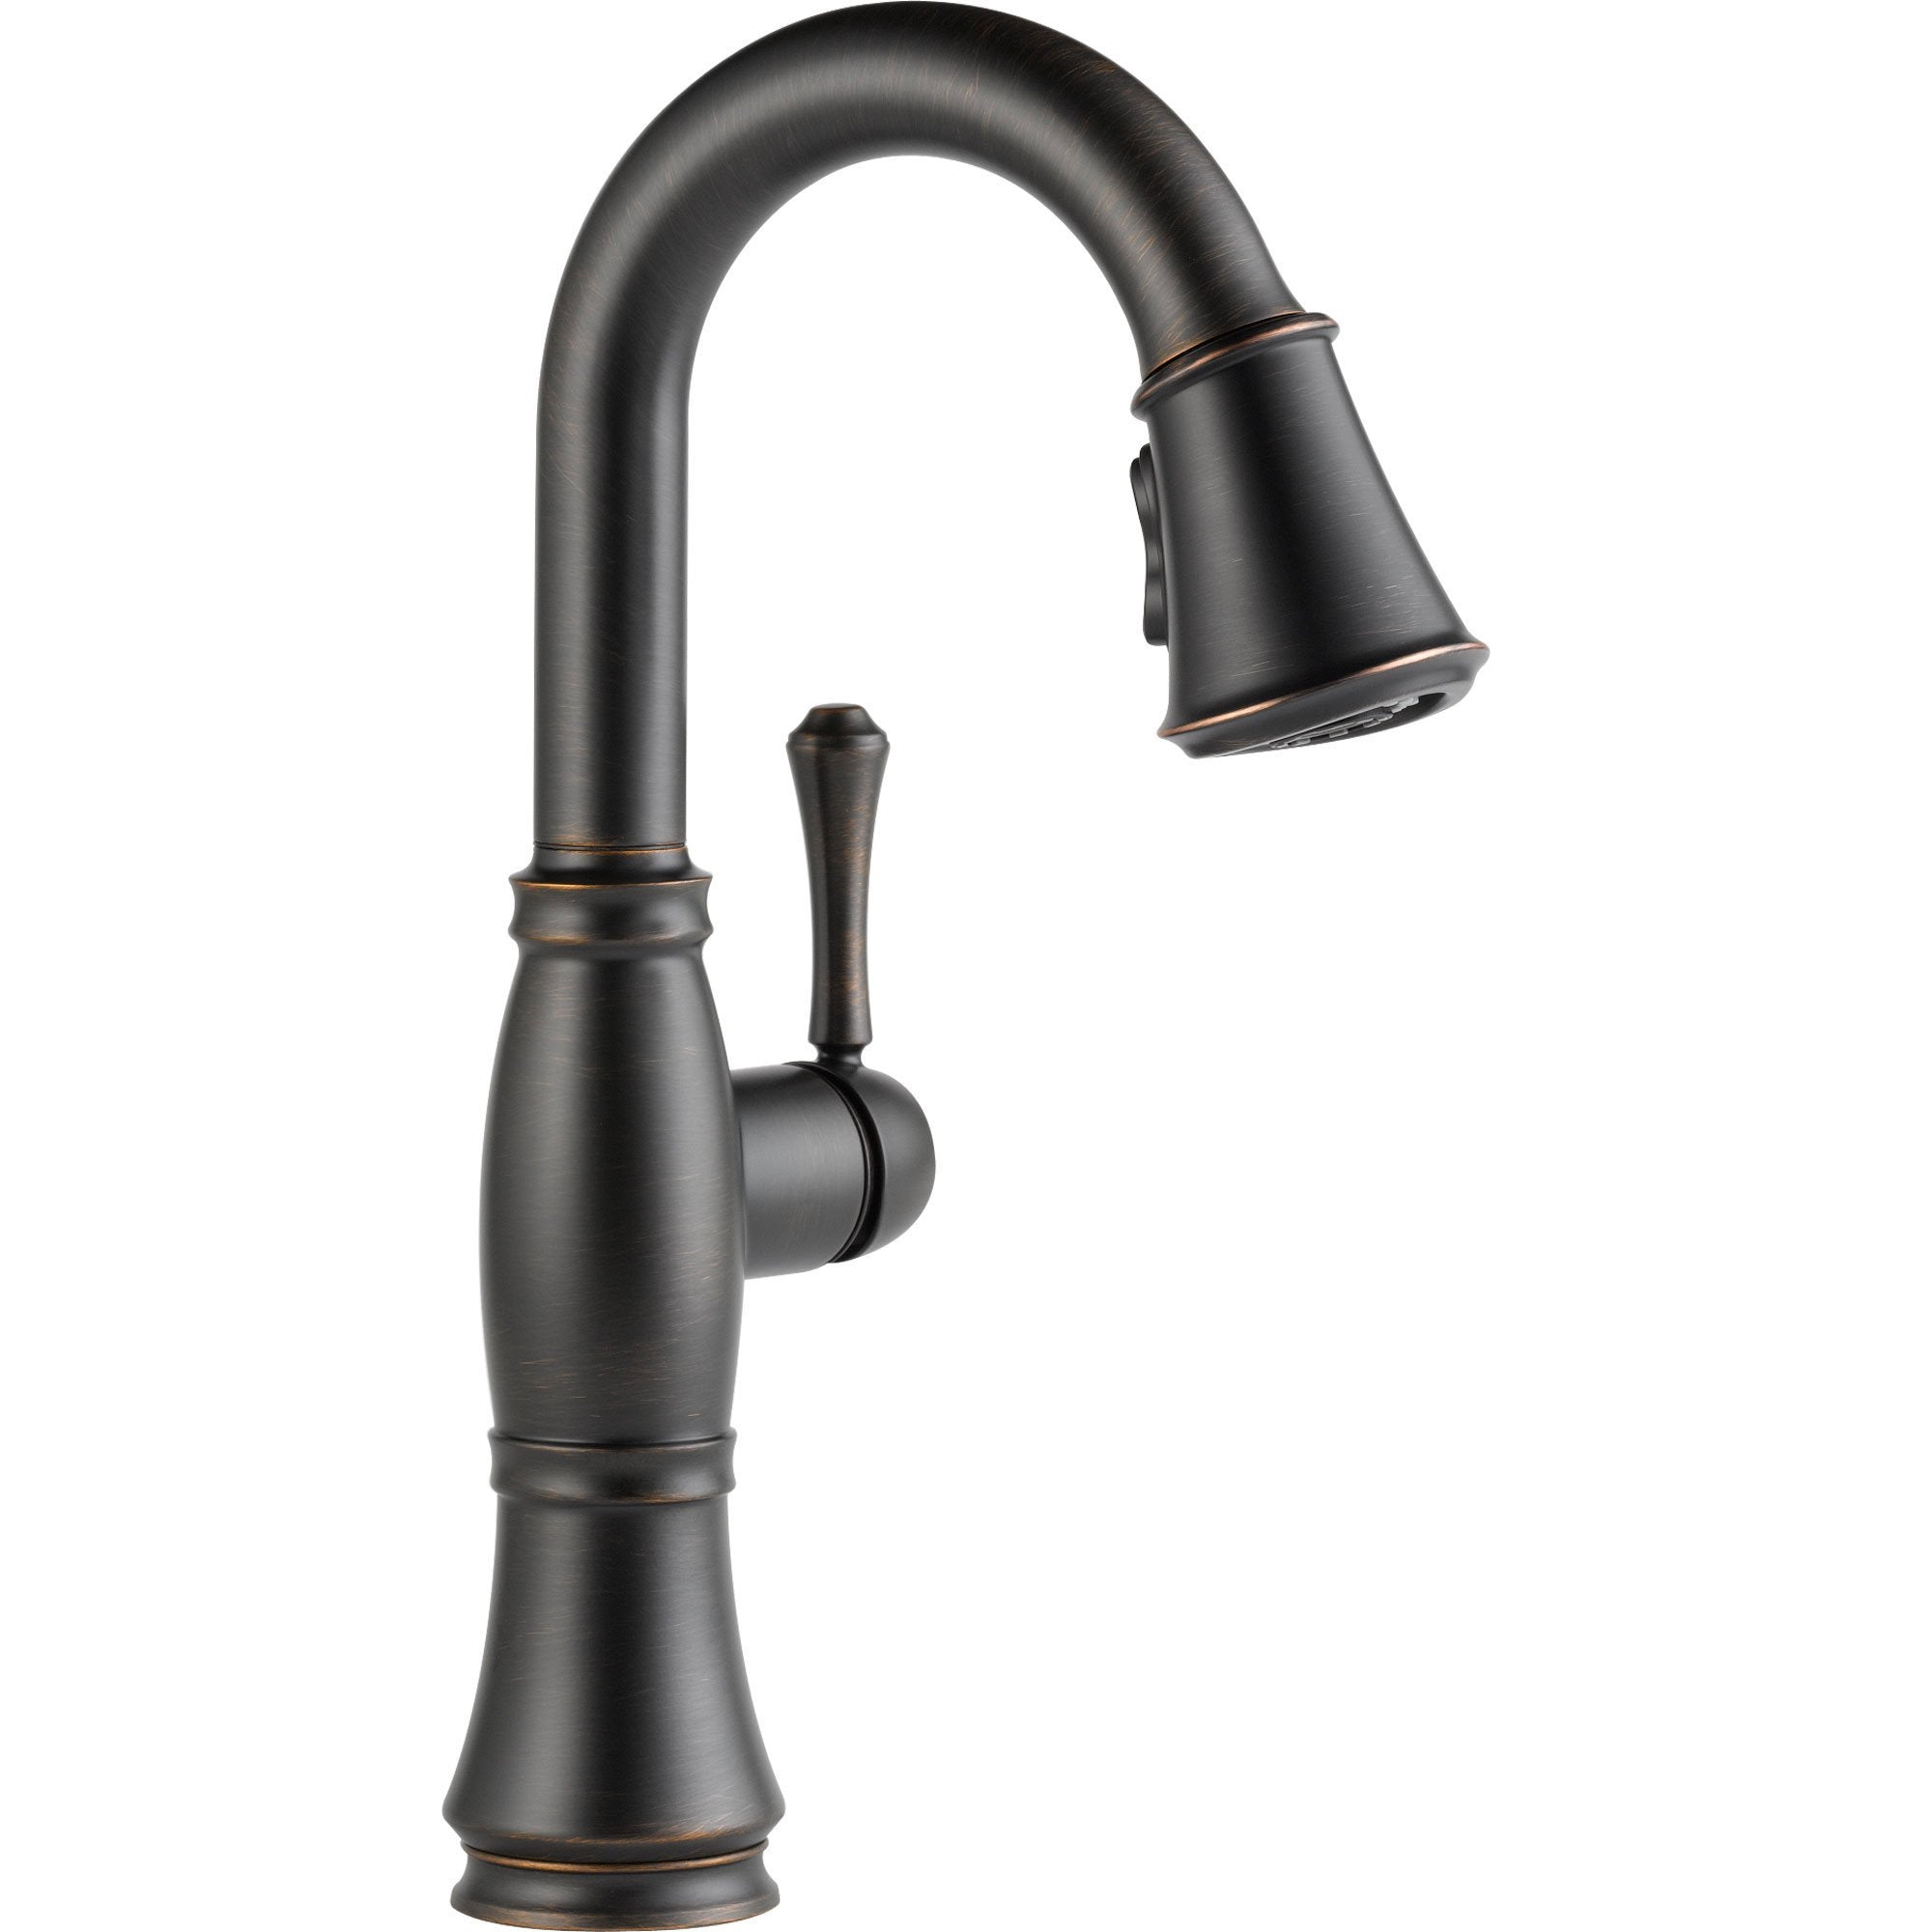 Delta Cassidy Venetian Bronze Single Handle Pull-Down Sprayer Bar Faucet 579600